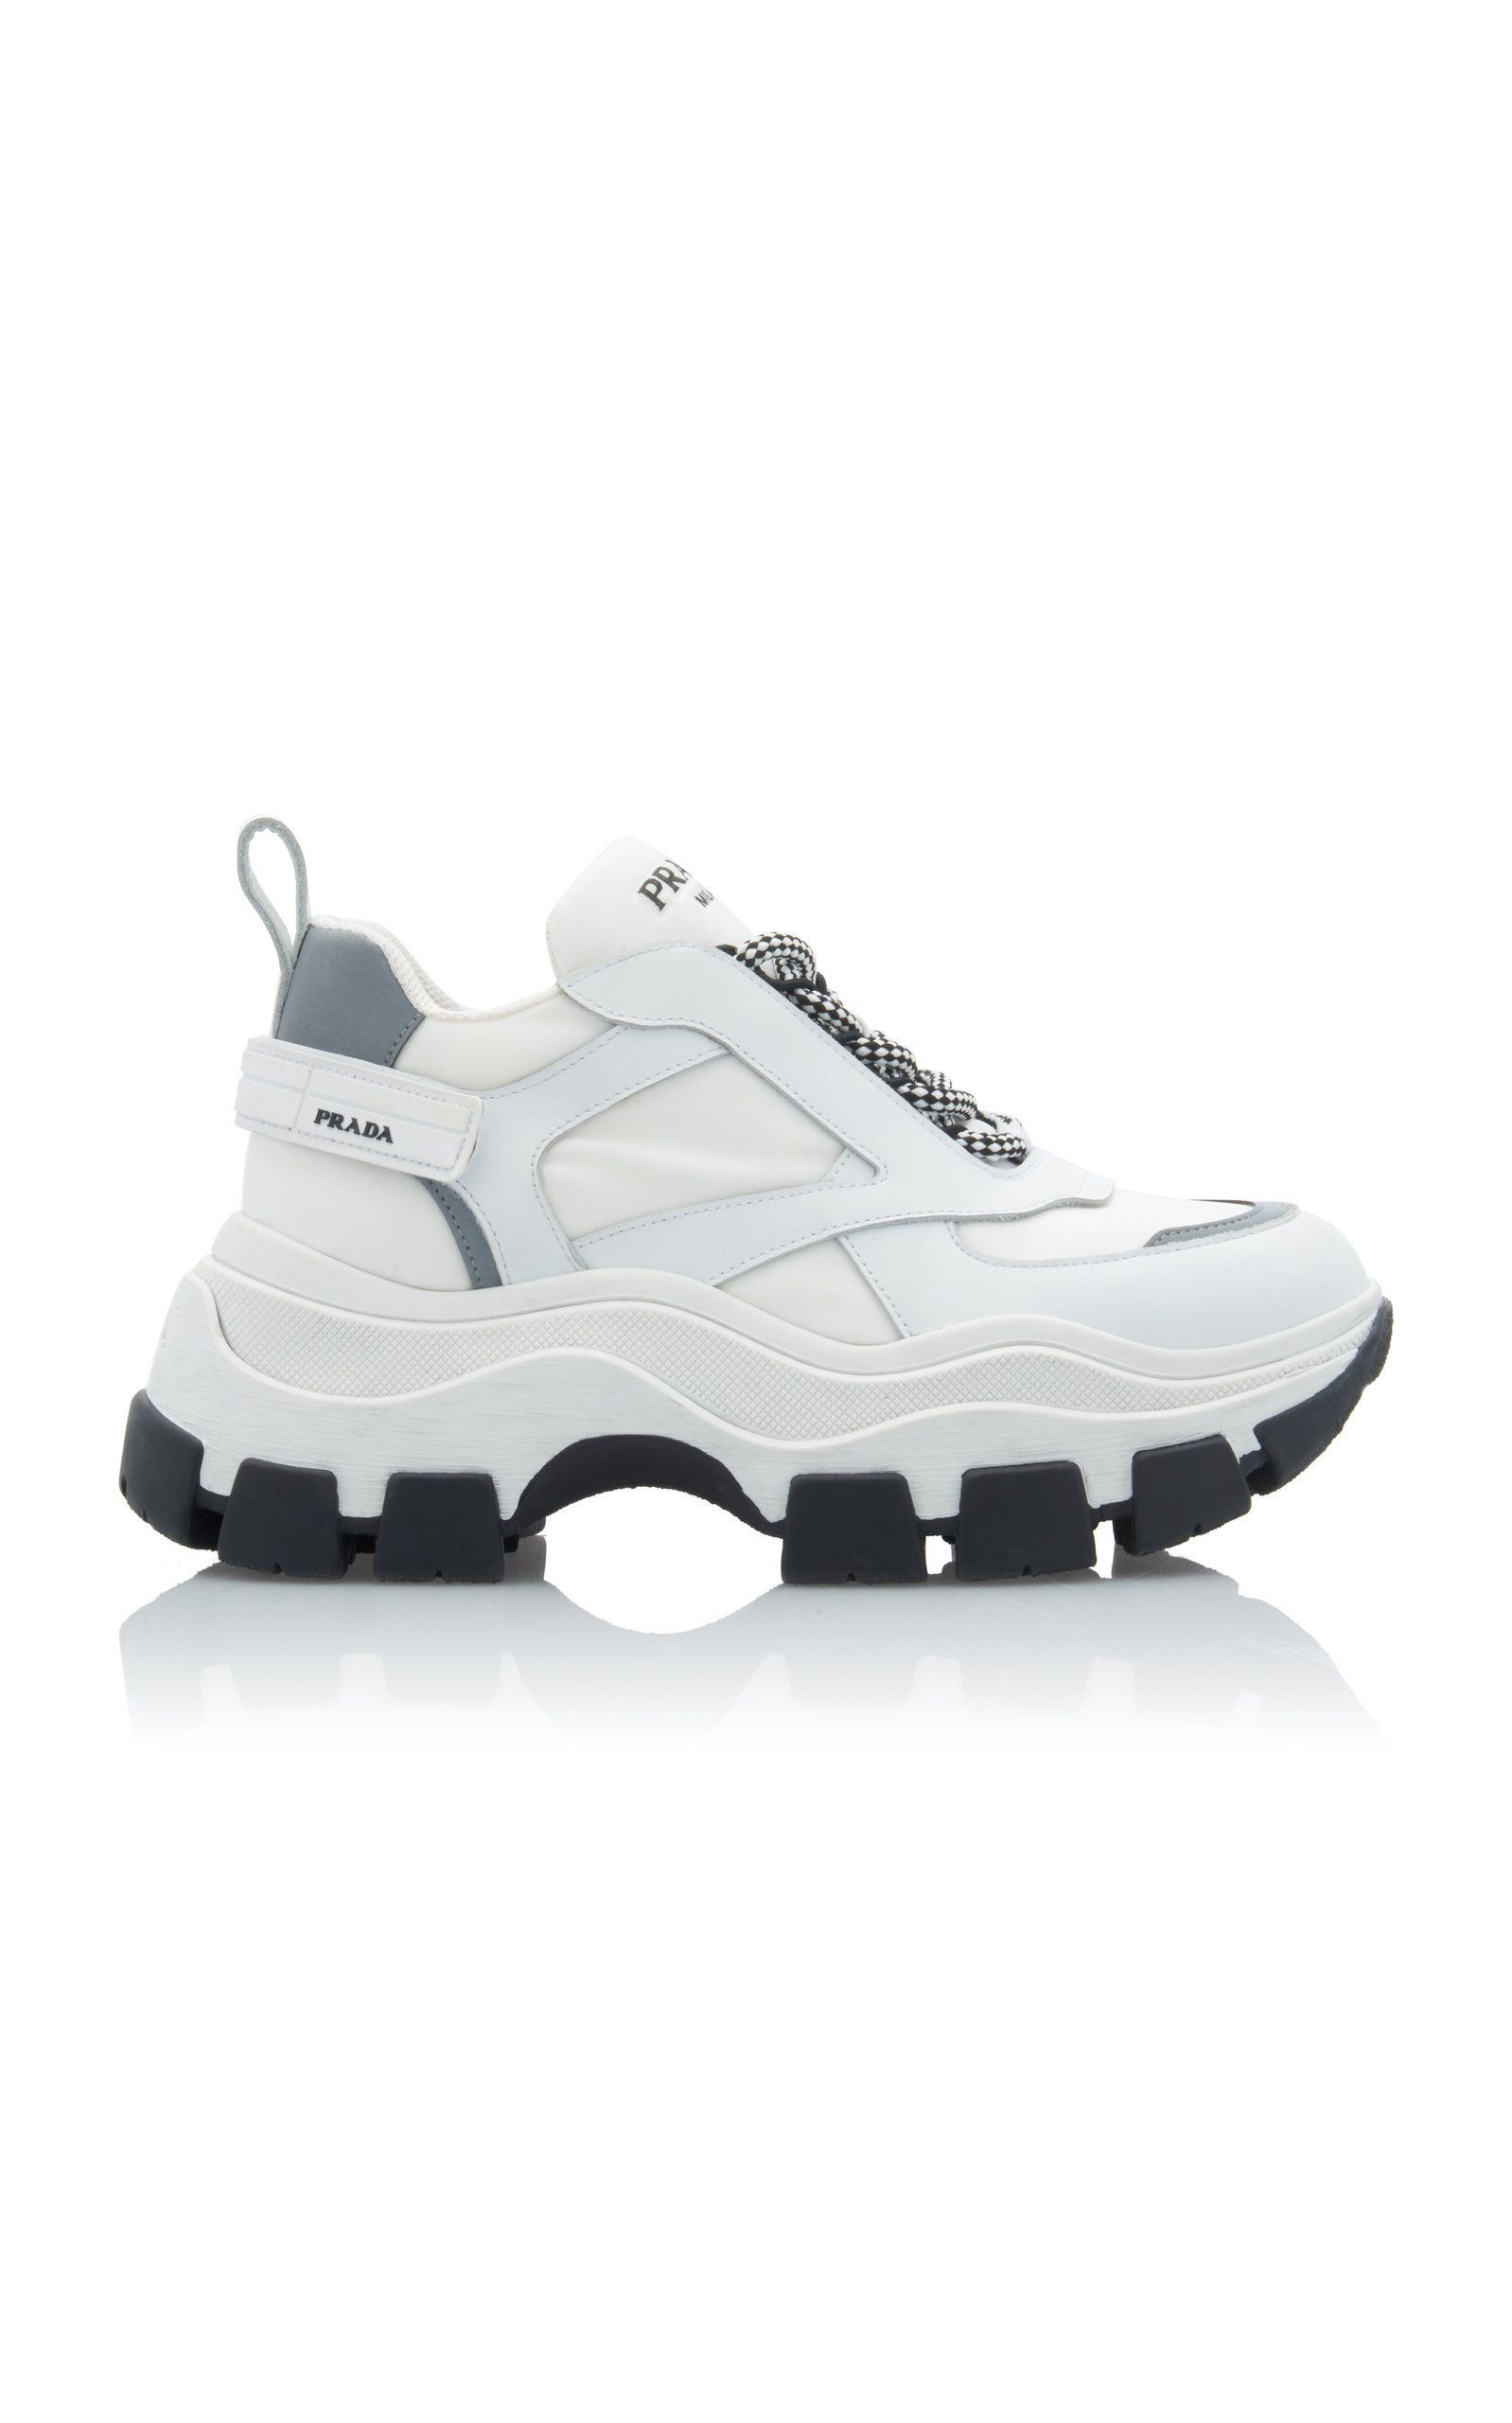 Prada Leather And Rubber Platform Sneakers in 2020